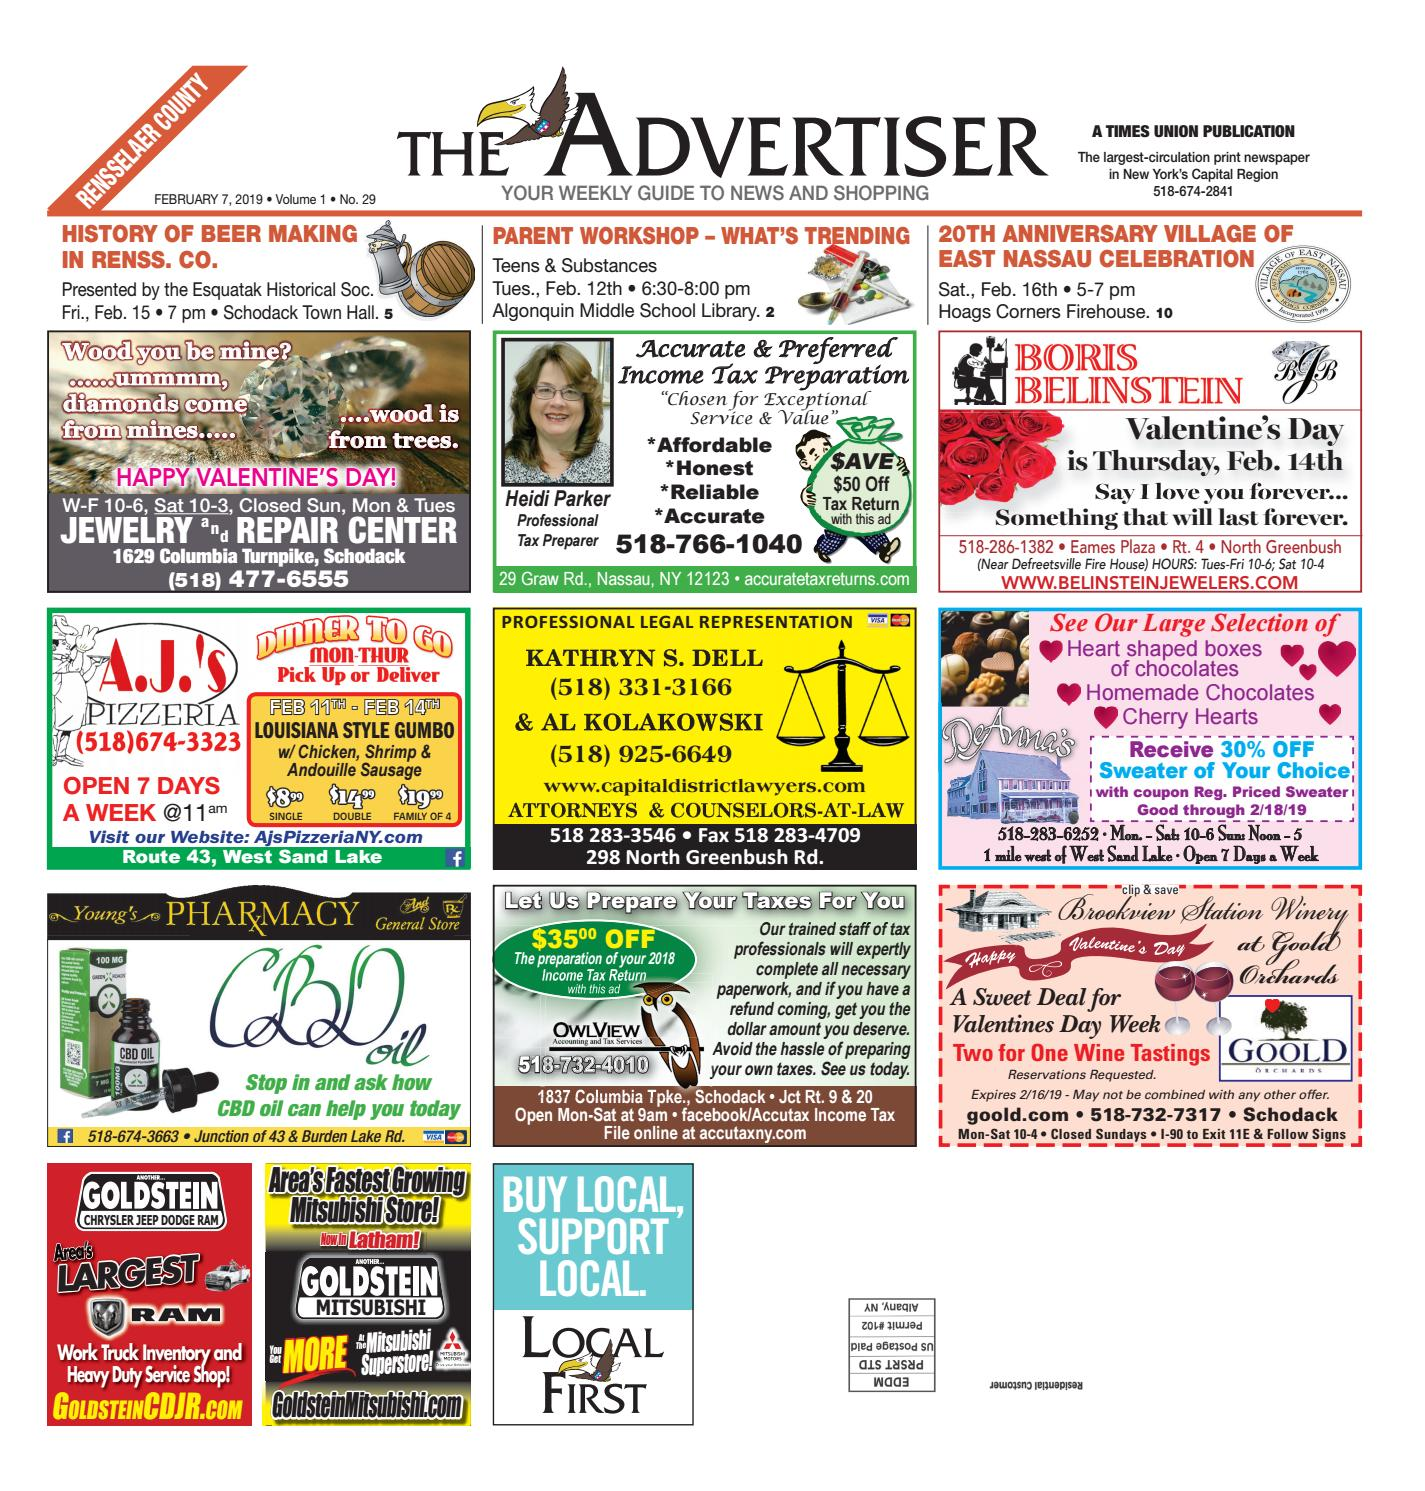 Local First The Advertiser 020719 by Capital Region Weekly Newspapers -  issuu